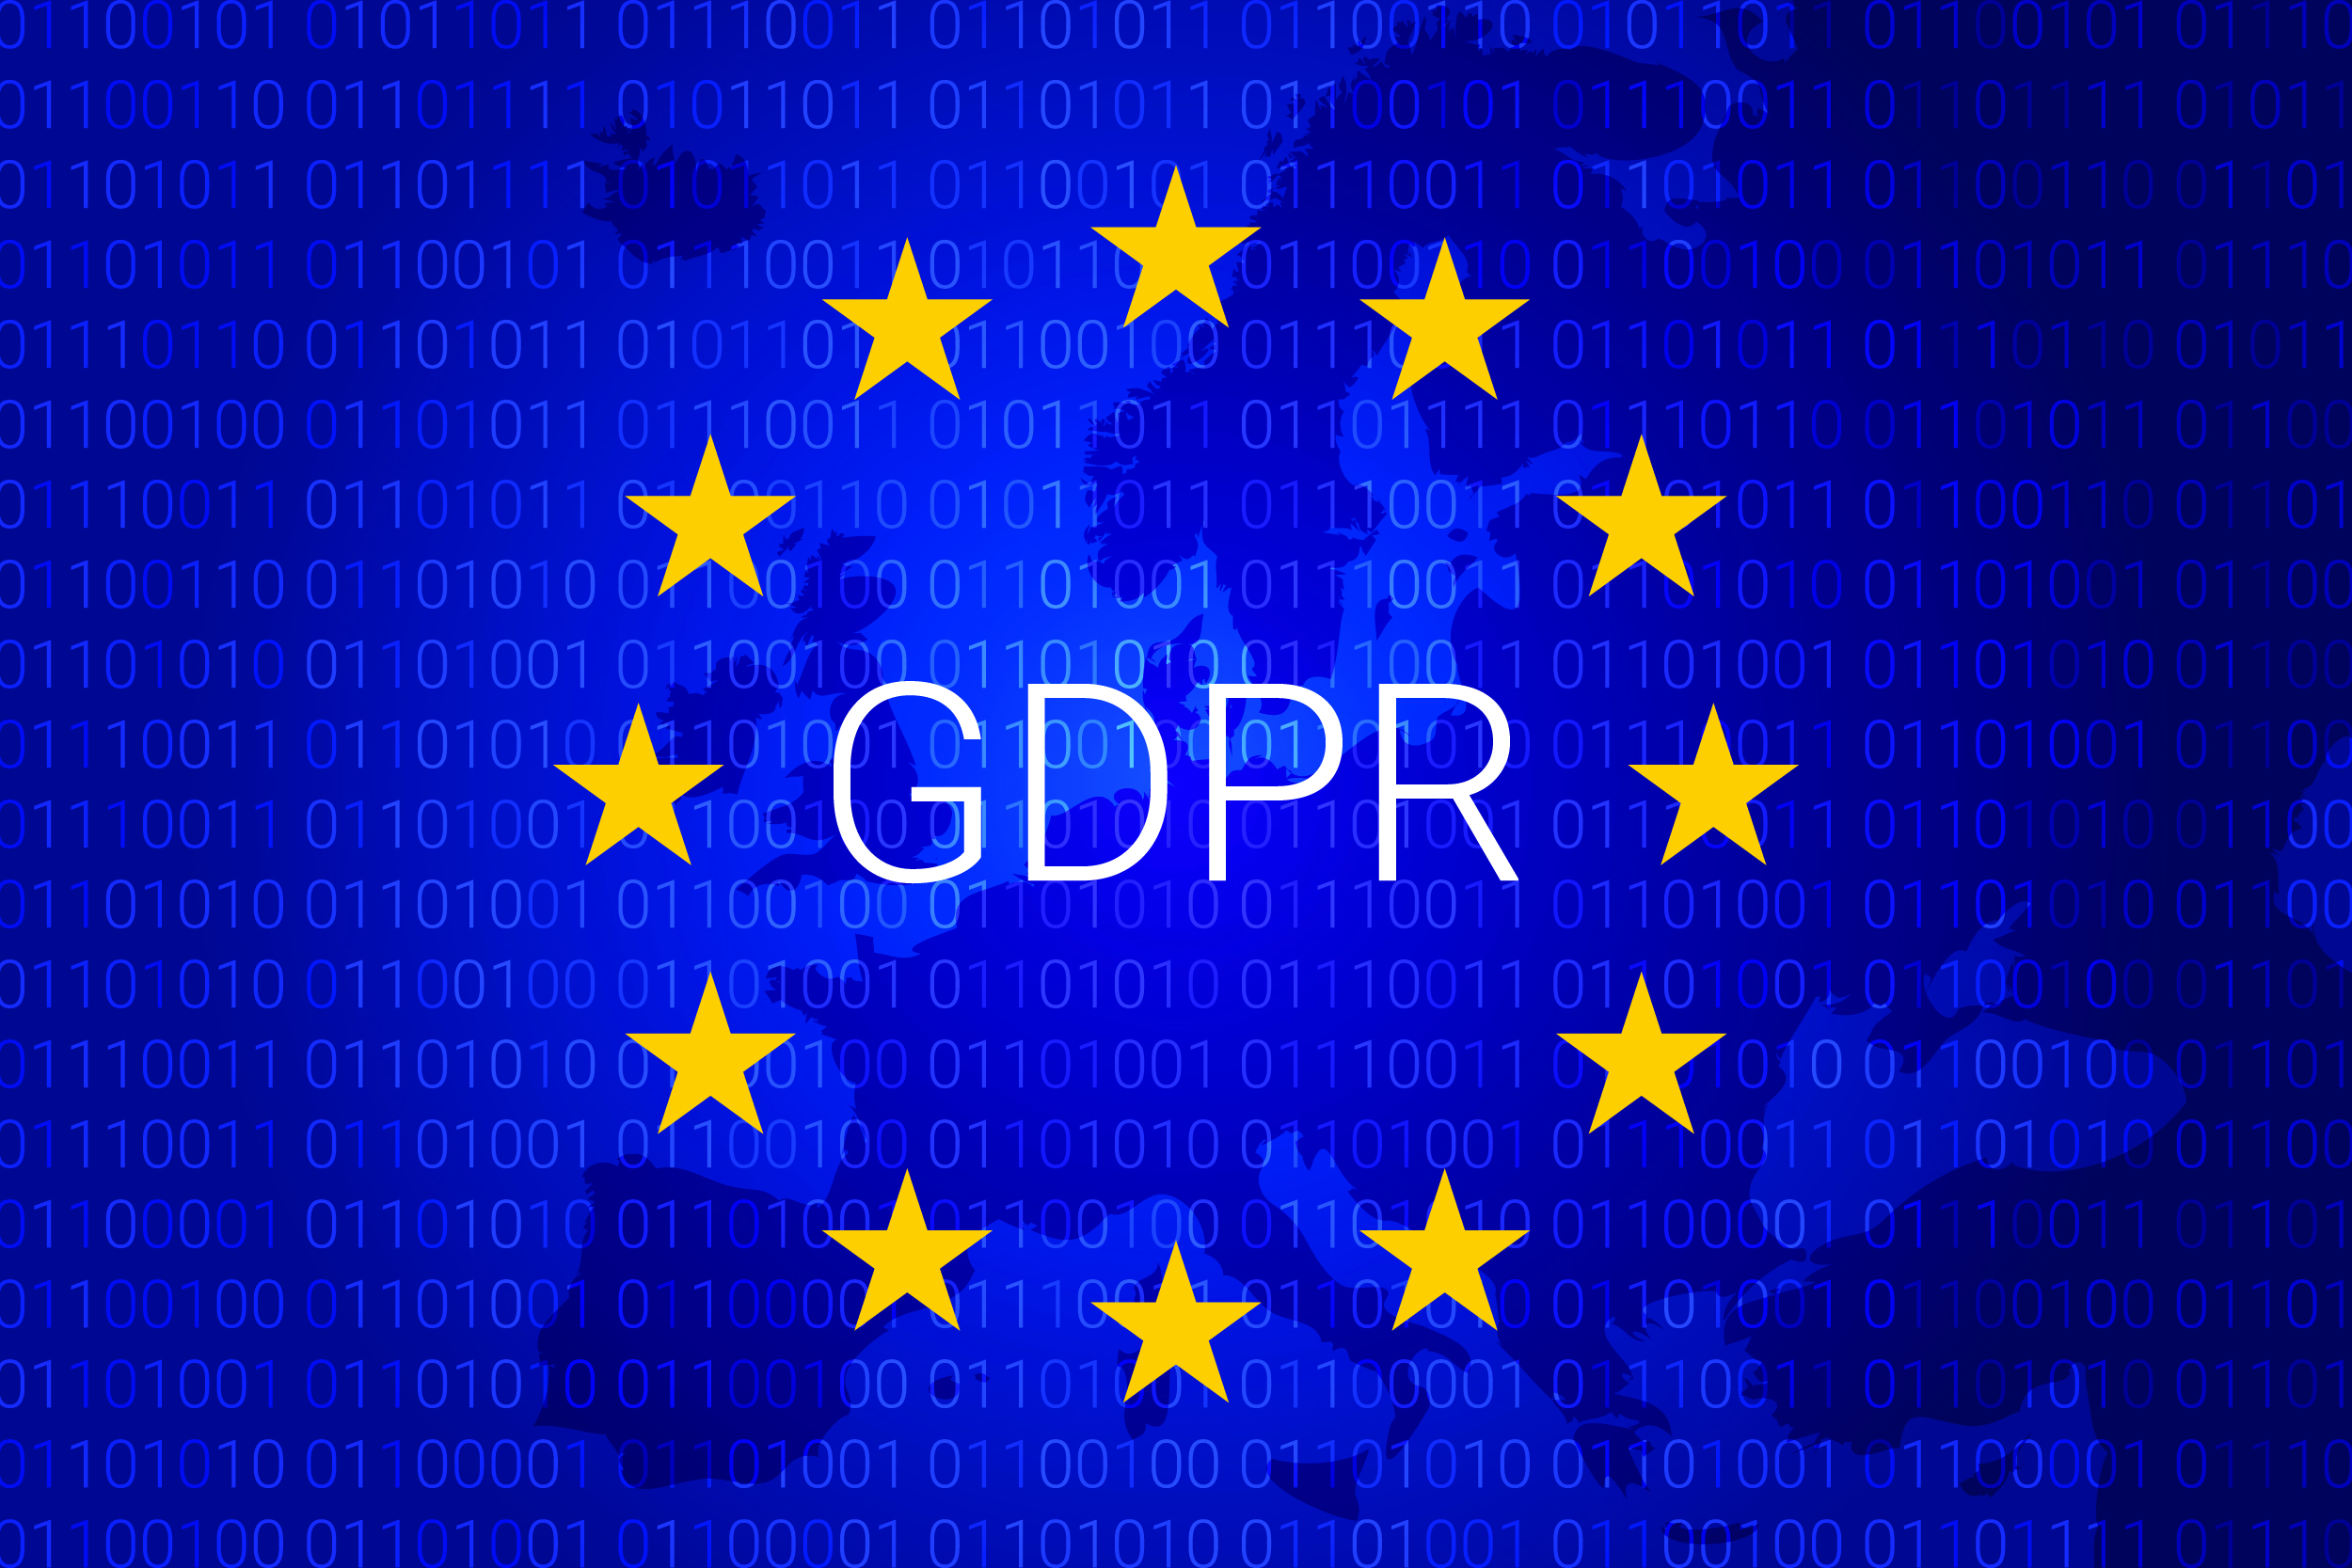 Getting to Grips with the GDPR